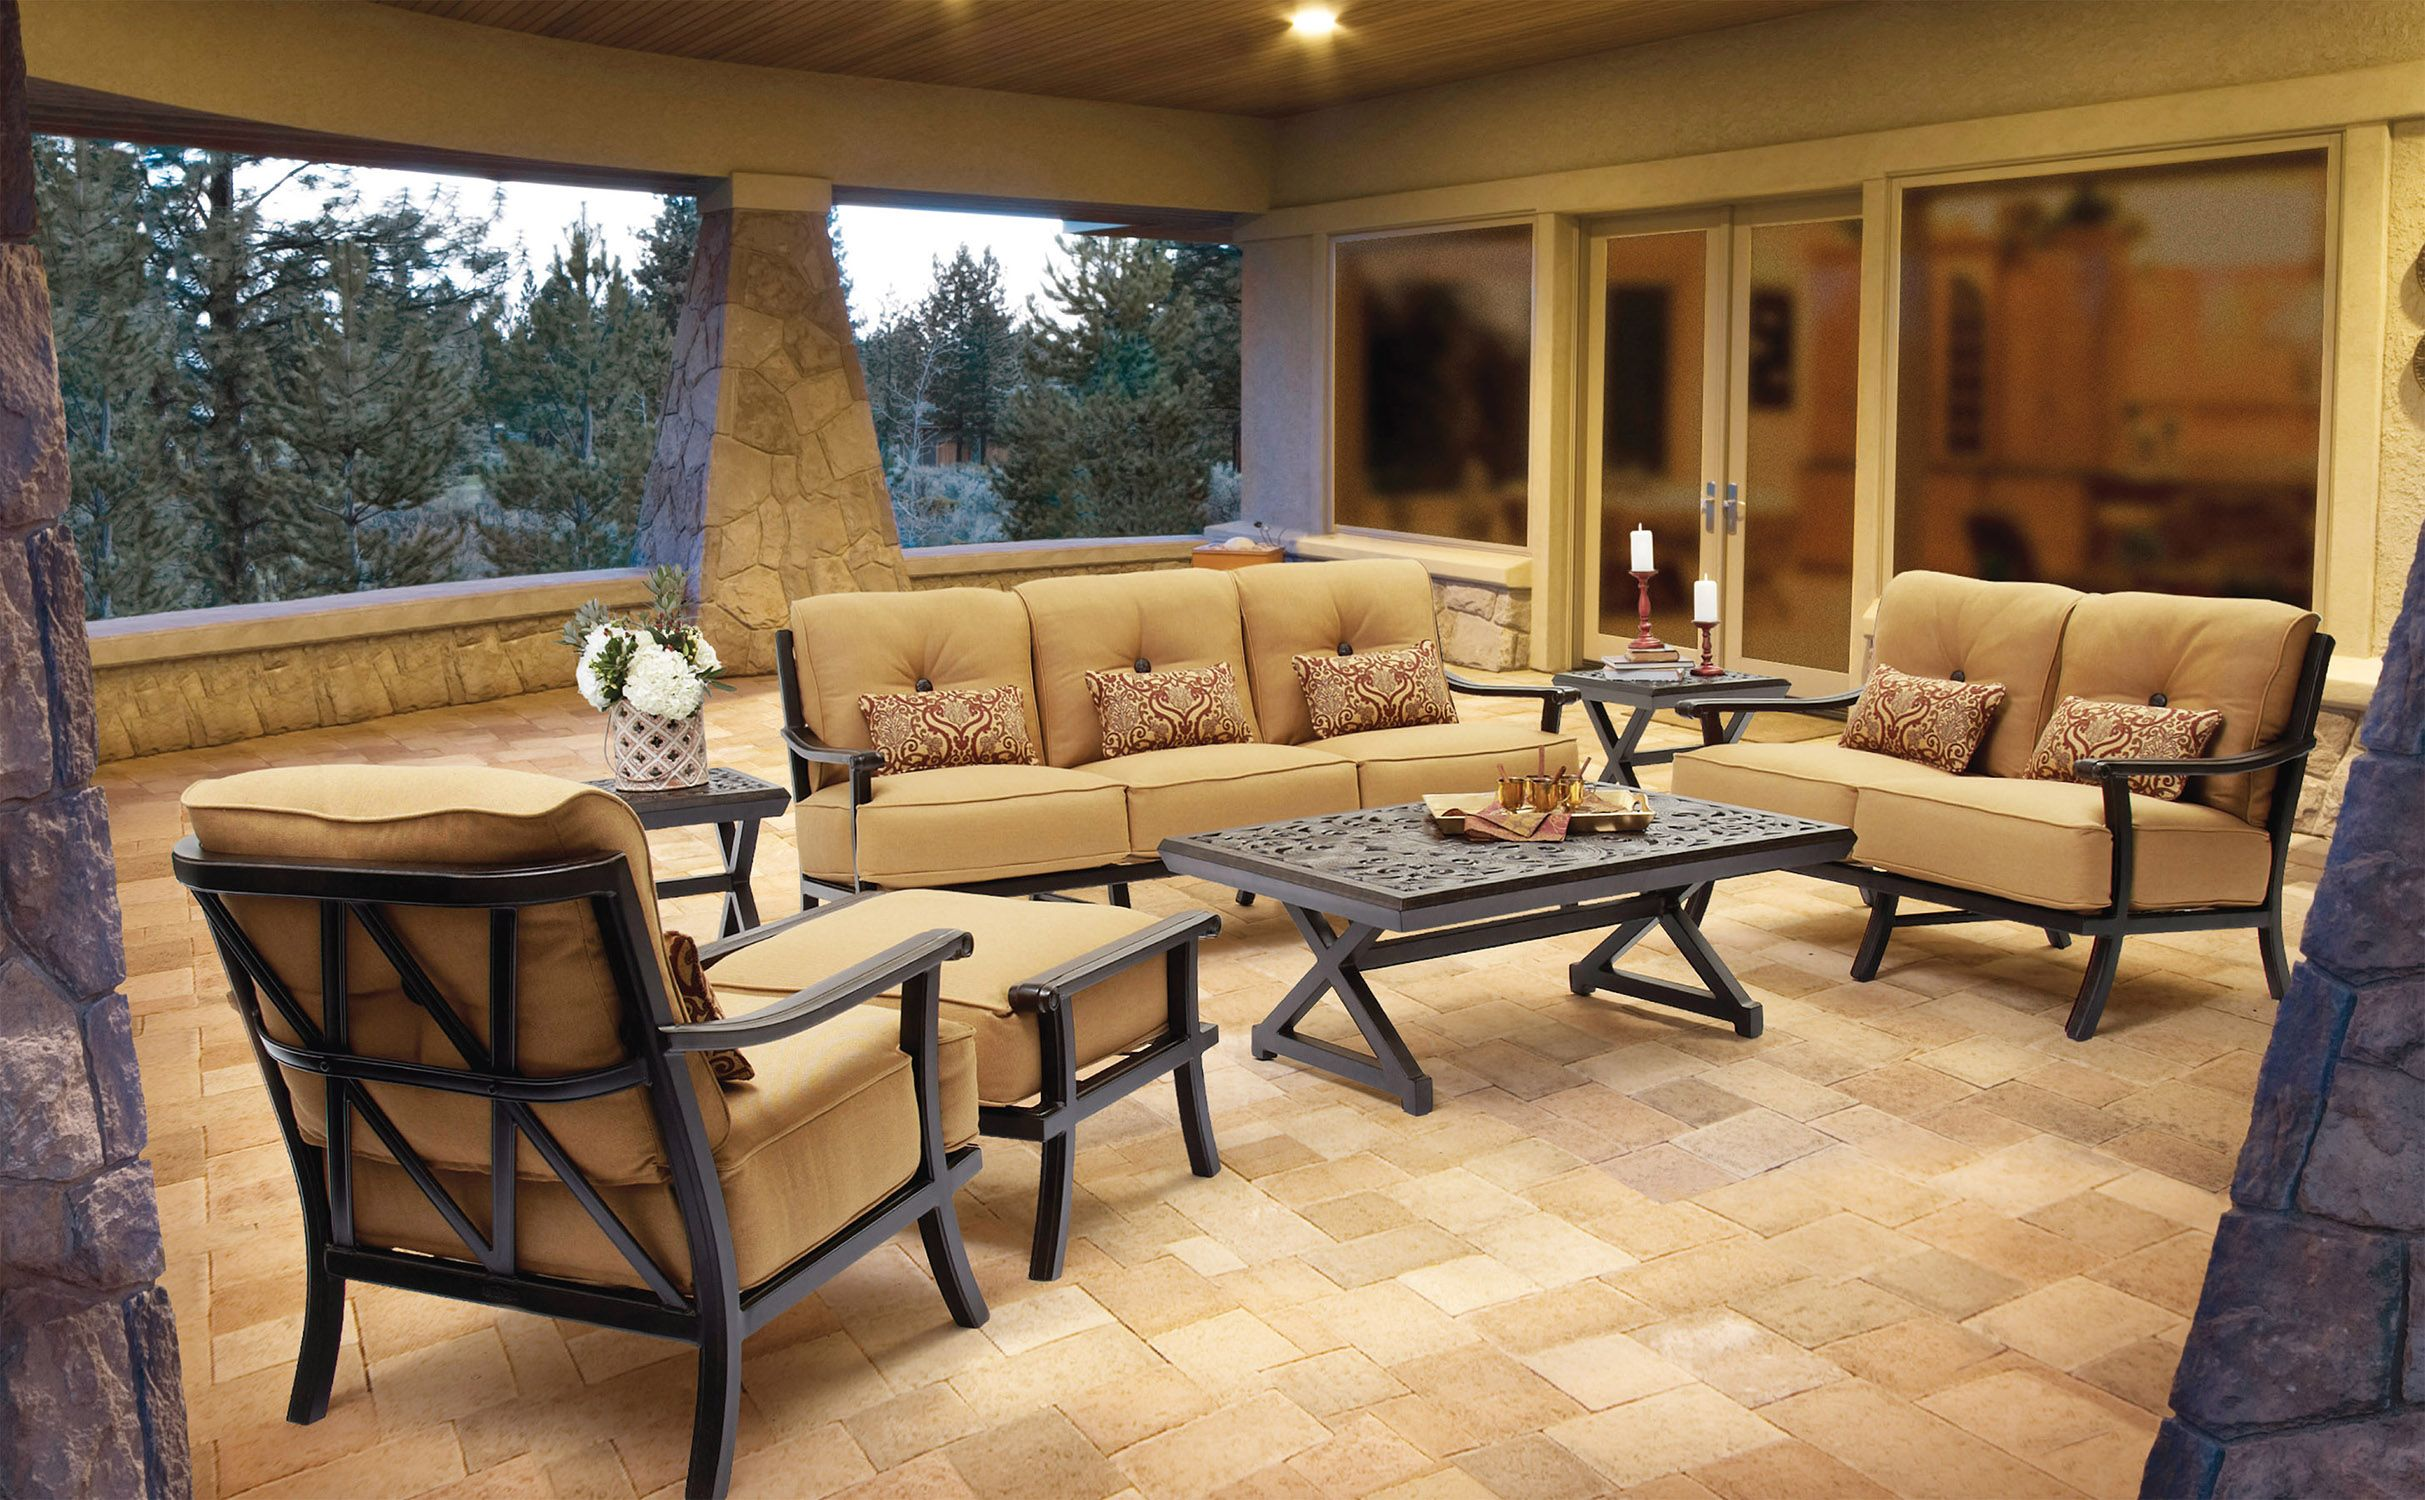 The Deep Seating Set in the Chateau Collection from Pride ... on Fine Living Patio Set id=80999